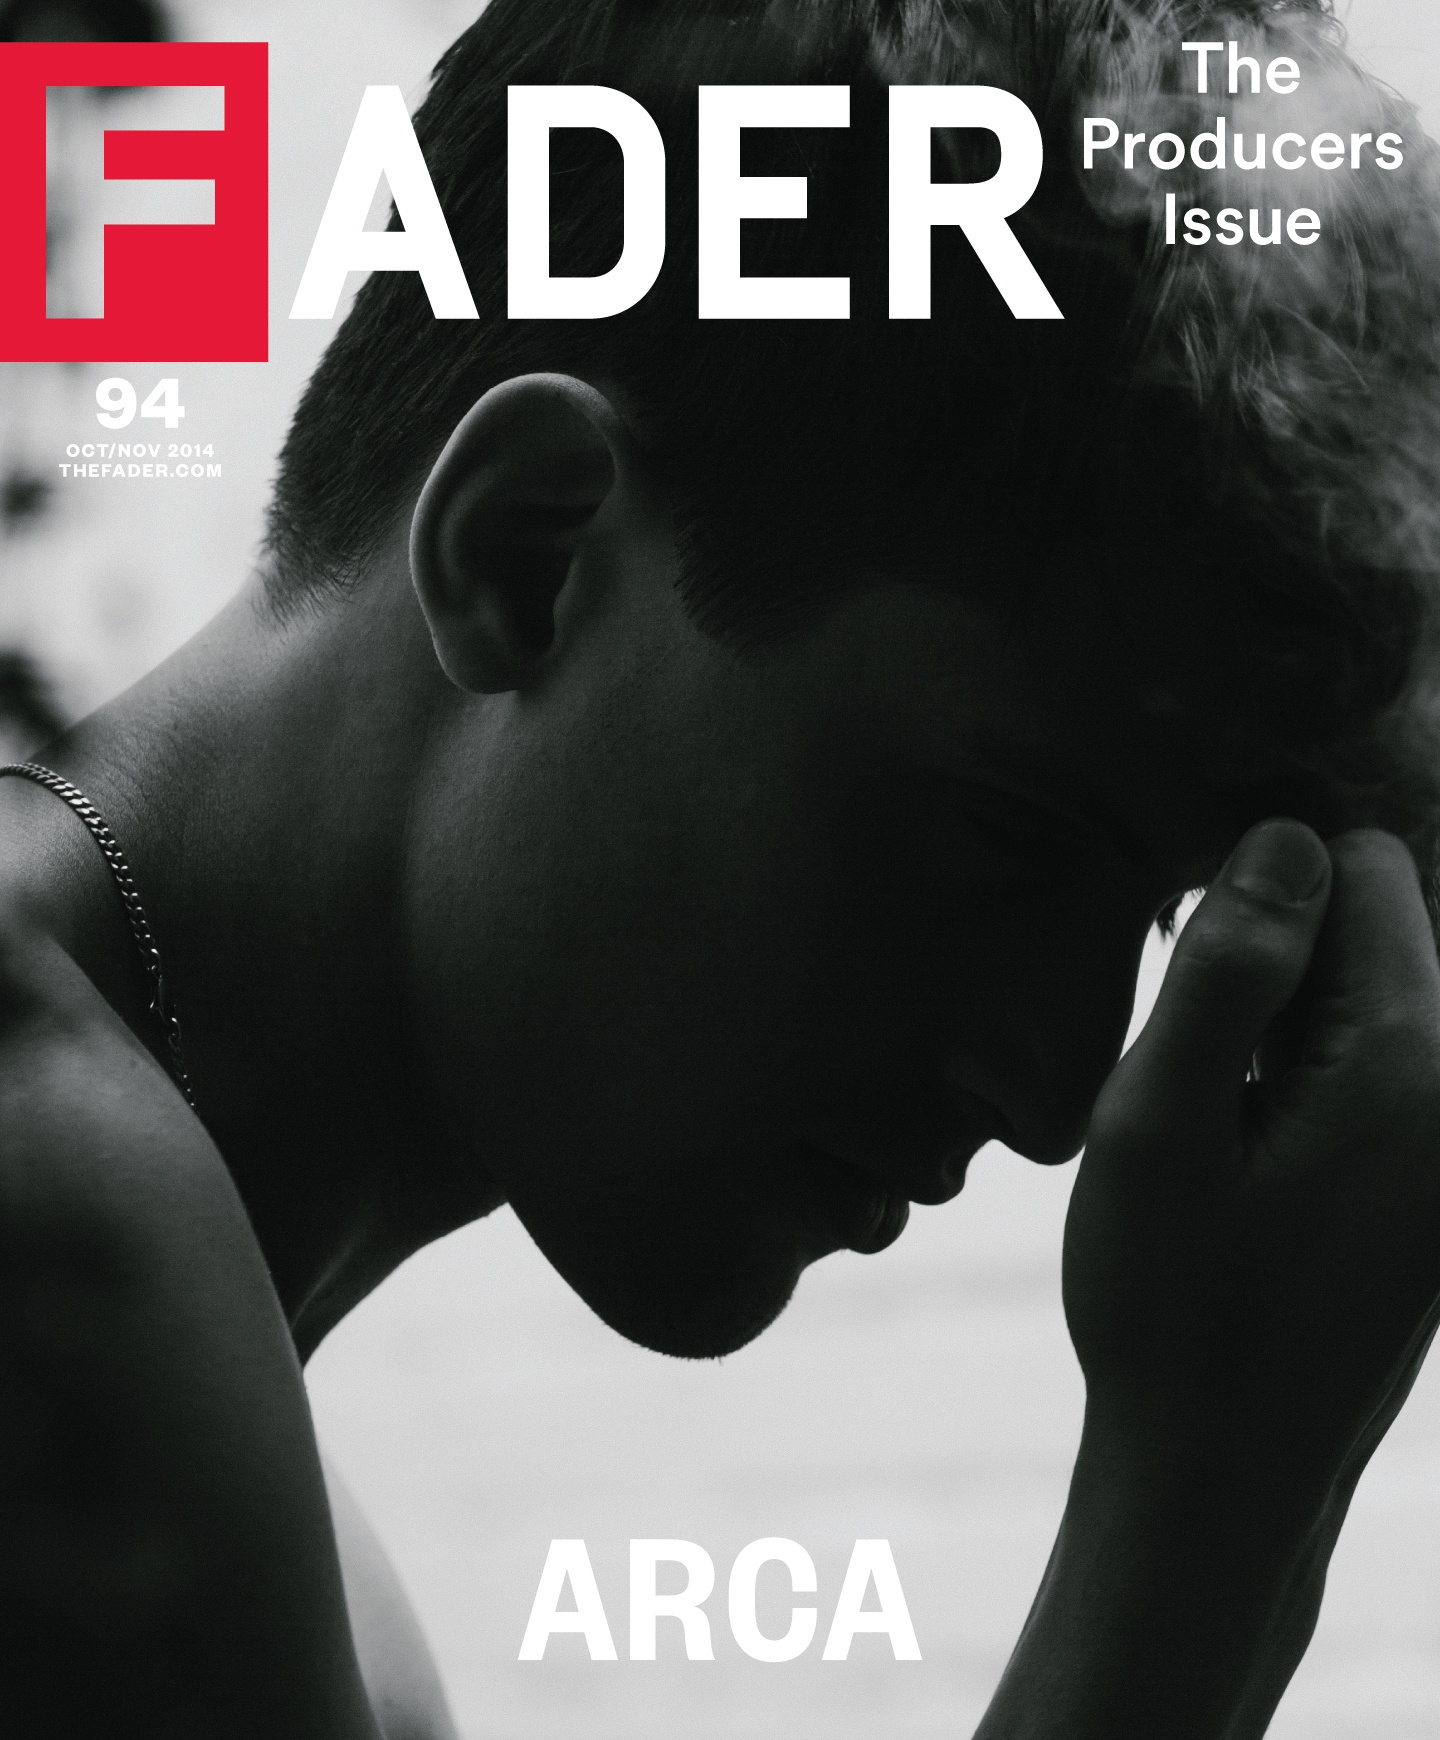 Arca - The FADER cover